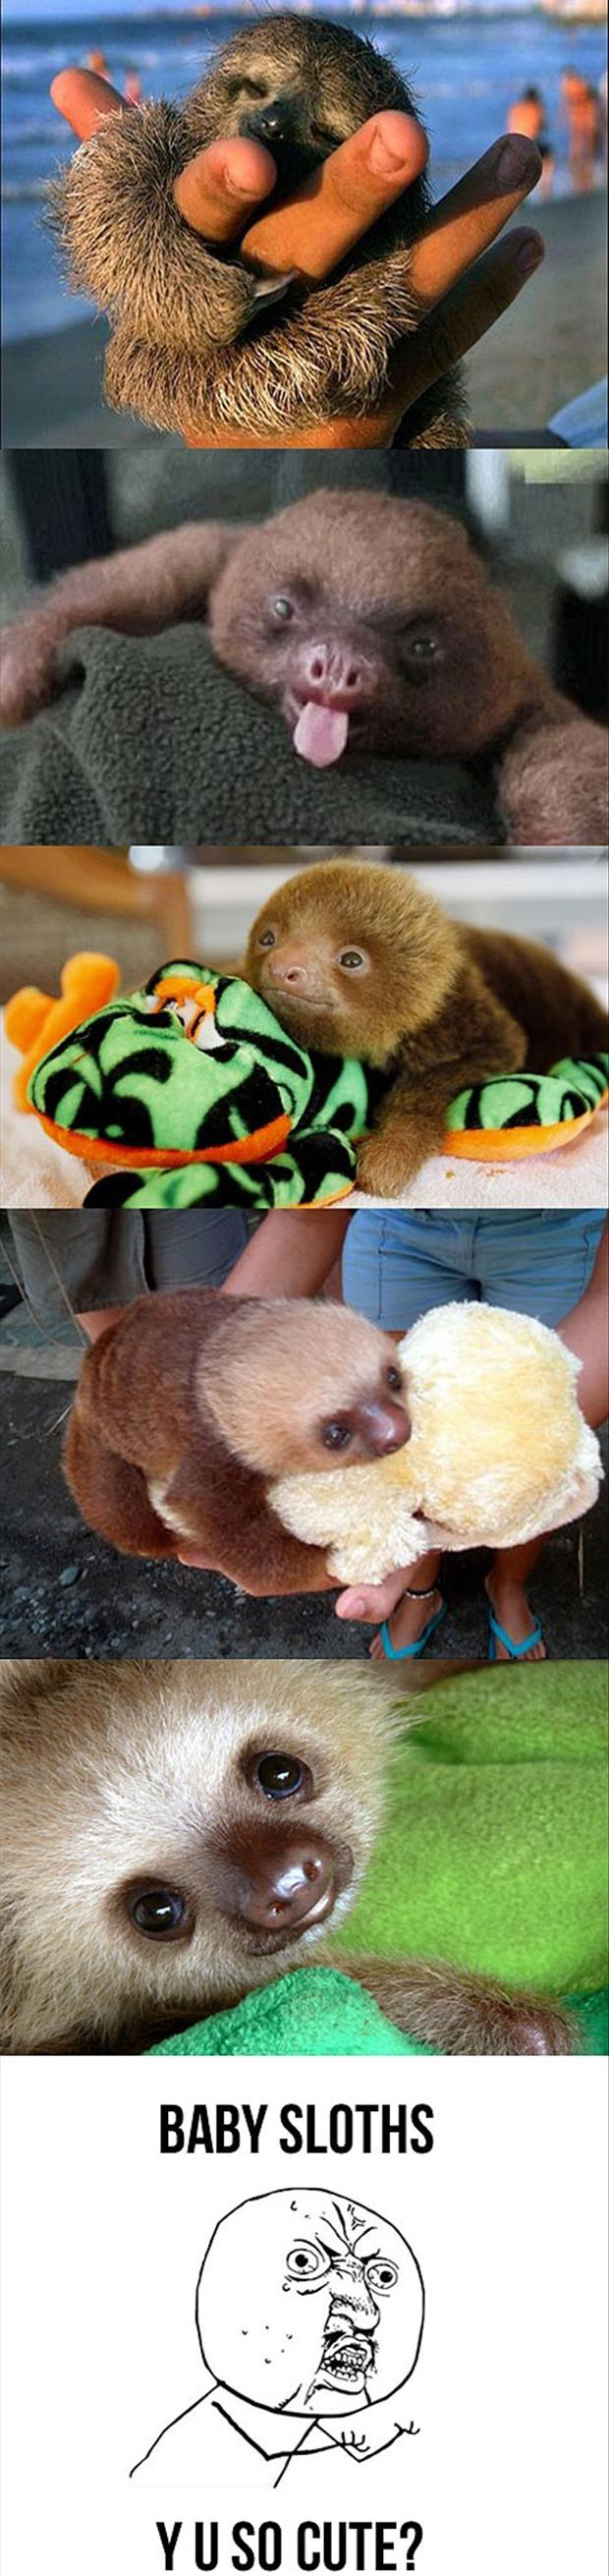 the baby sloths, funny meme